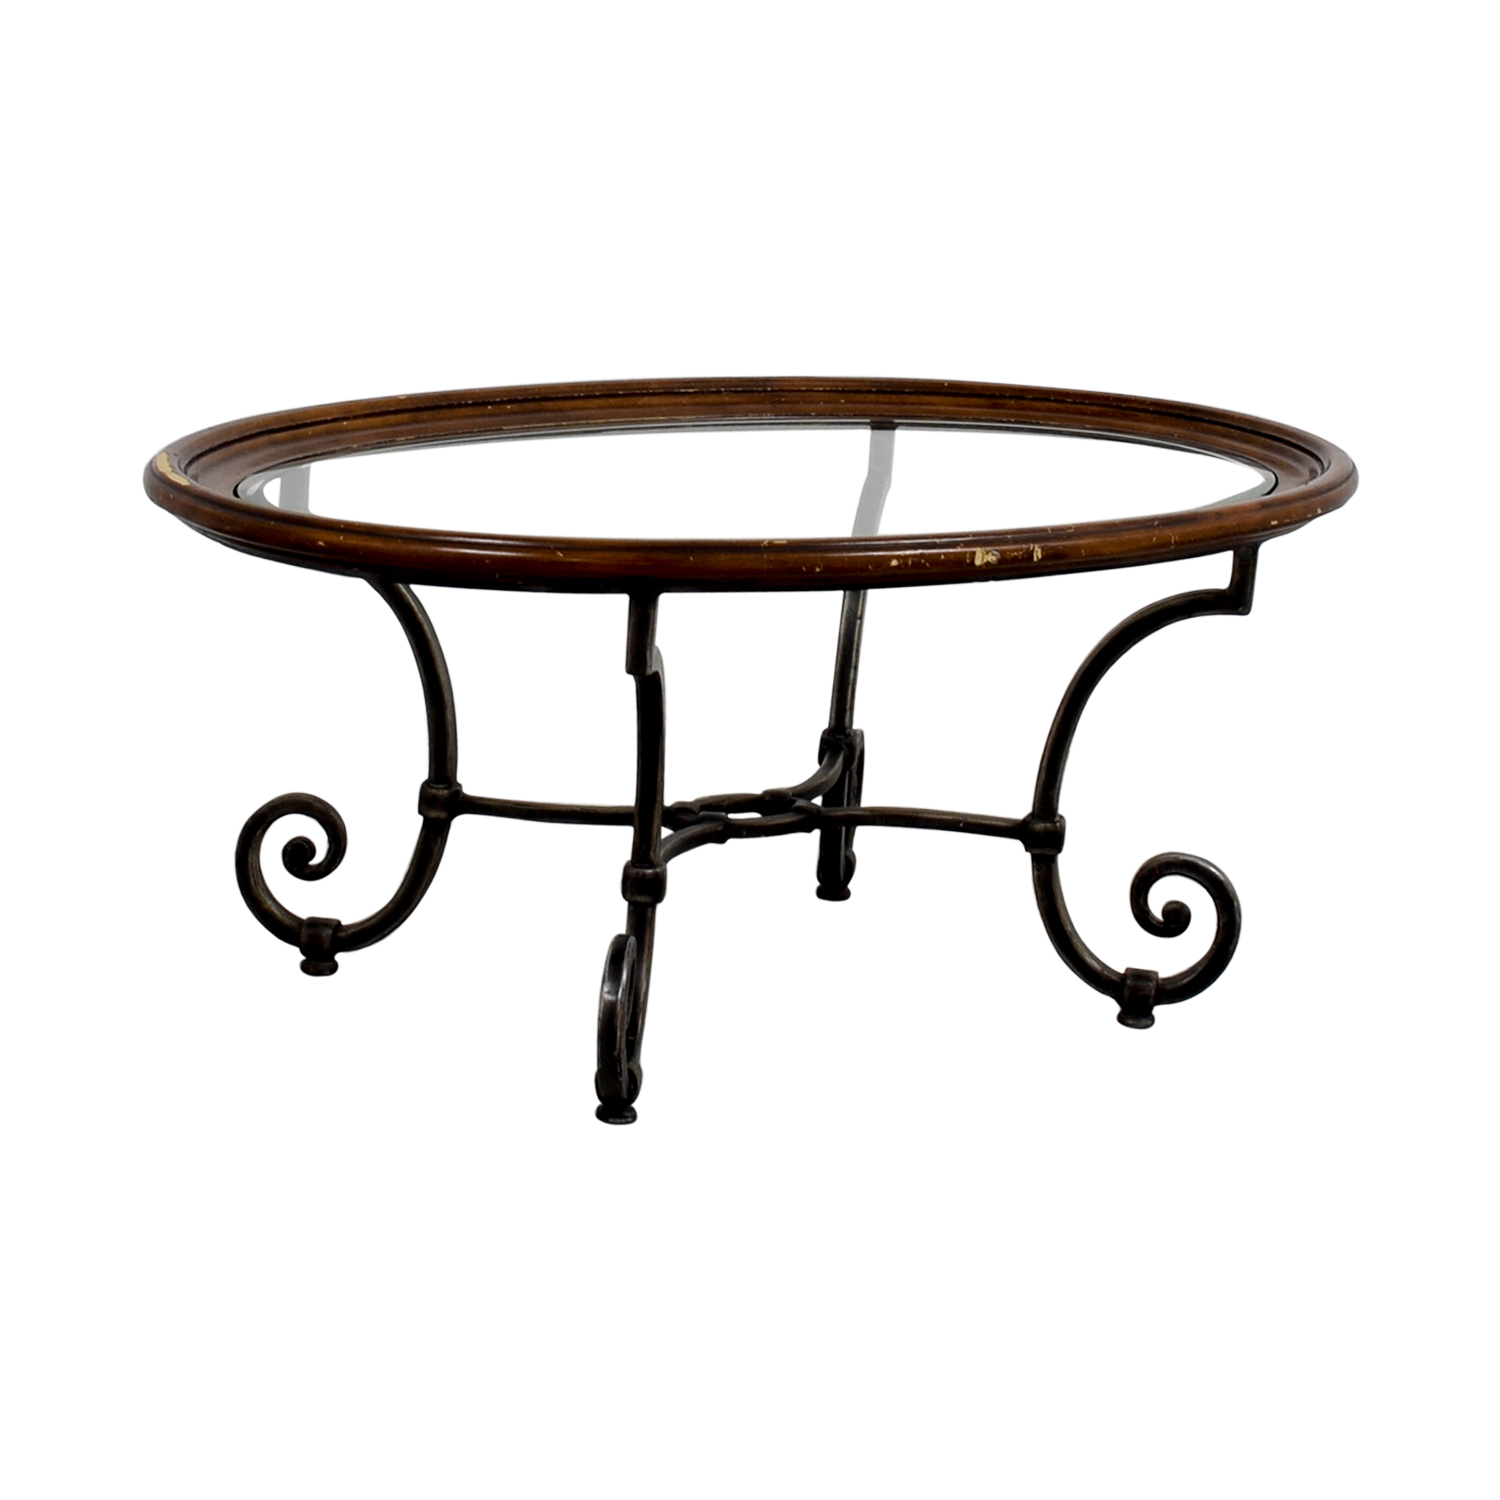 Ethan Allen Tuscan Coffee Table: Ethan Allen Ethan Allen Glass Coffee Table / Tables